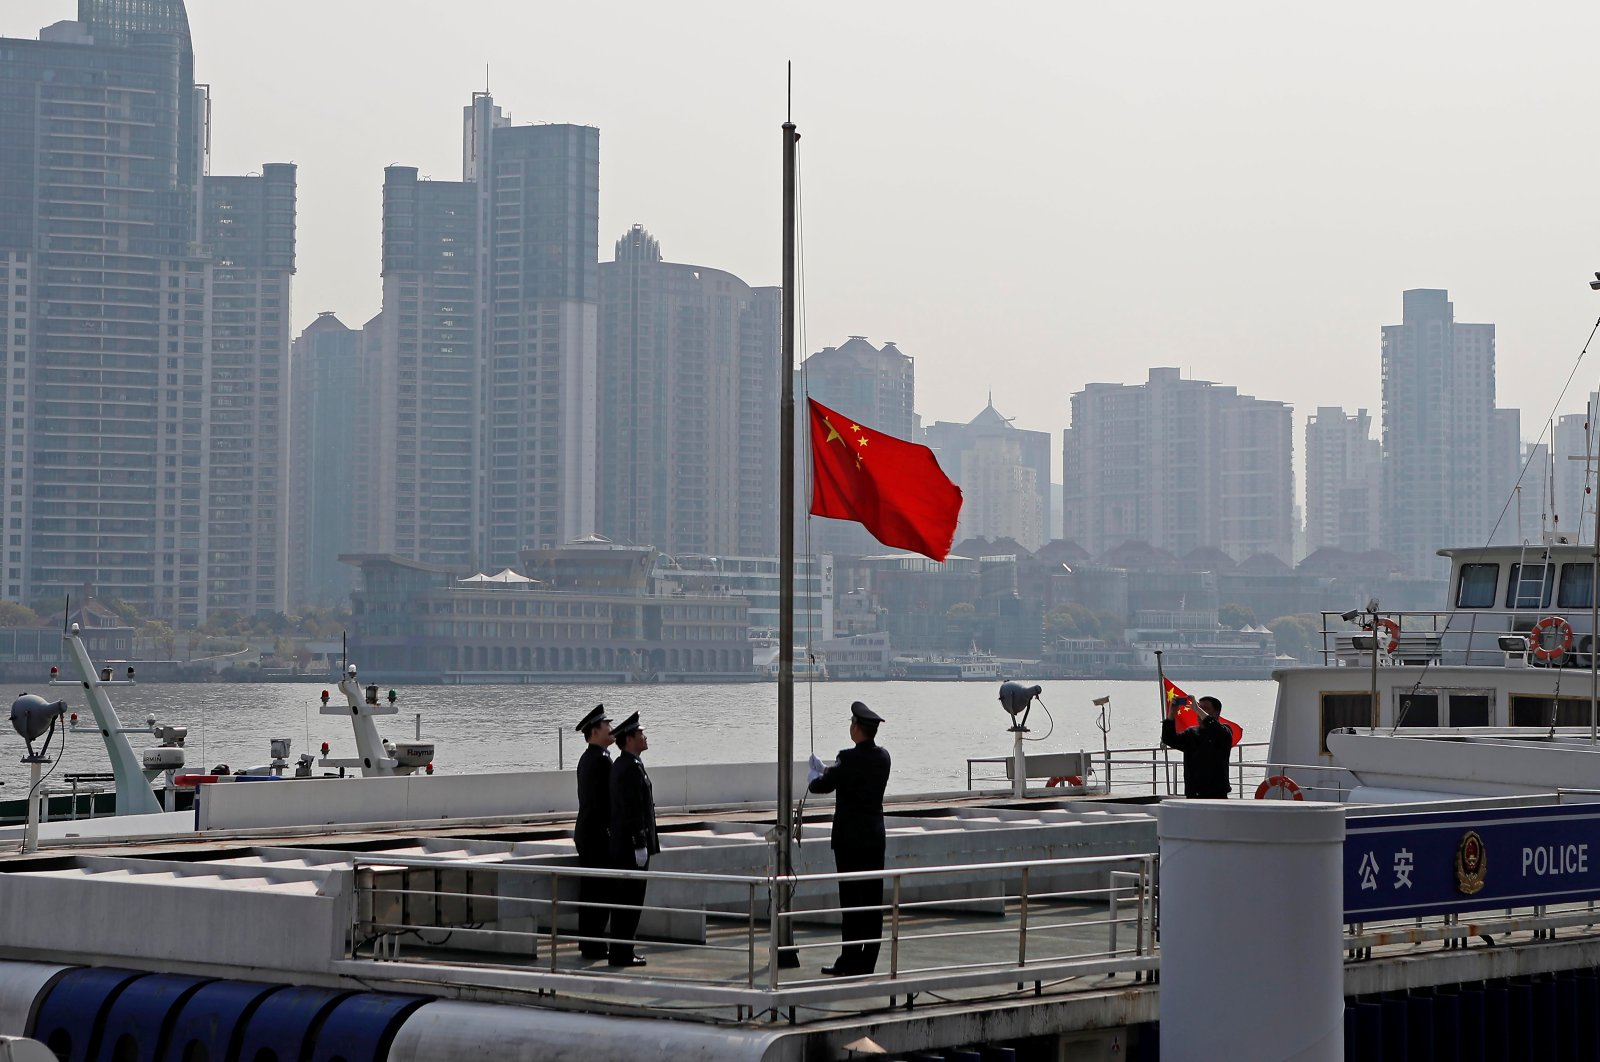 A police officer positions the Chinese national flag at half-mast along Huangpu river in Shanghai, as China holds a national mourning for those who died of the coronavirus disease (COVID-19), on the Qingming tomb-sweeping festival, April 4, 2020. (Reuters Photo)